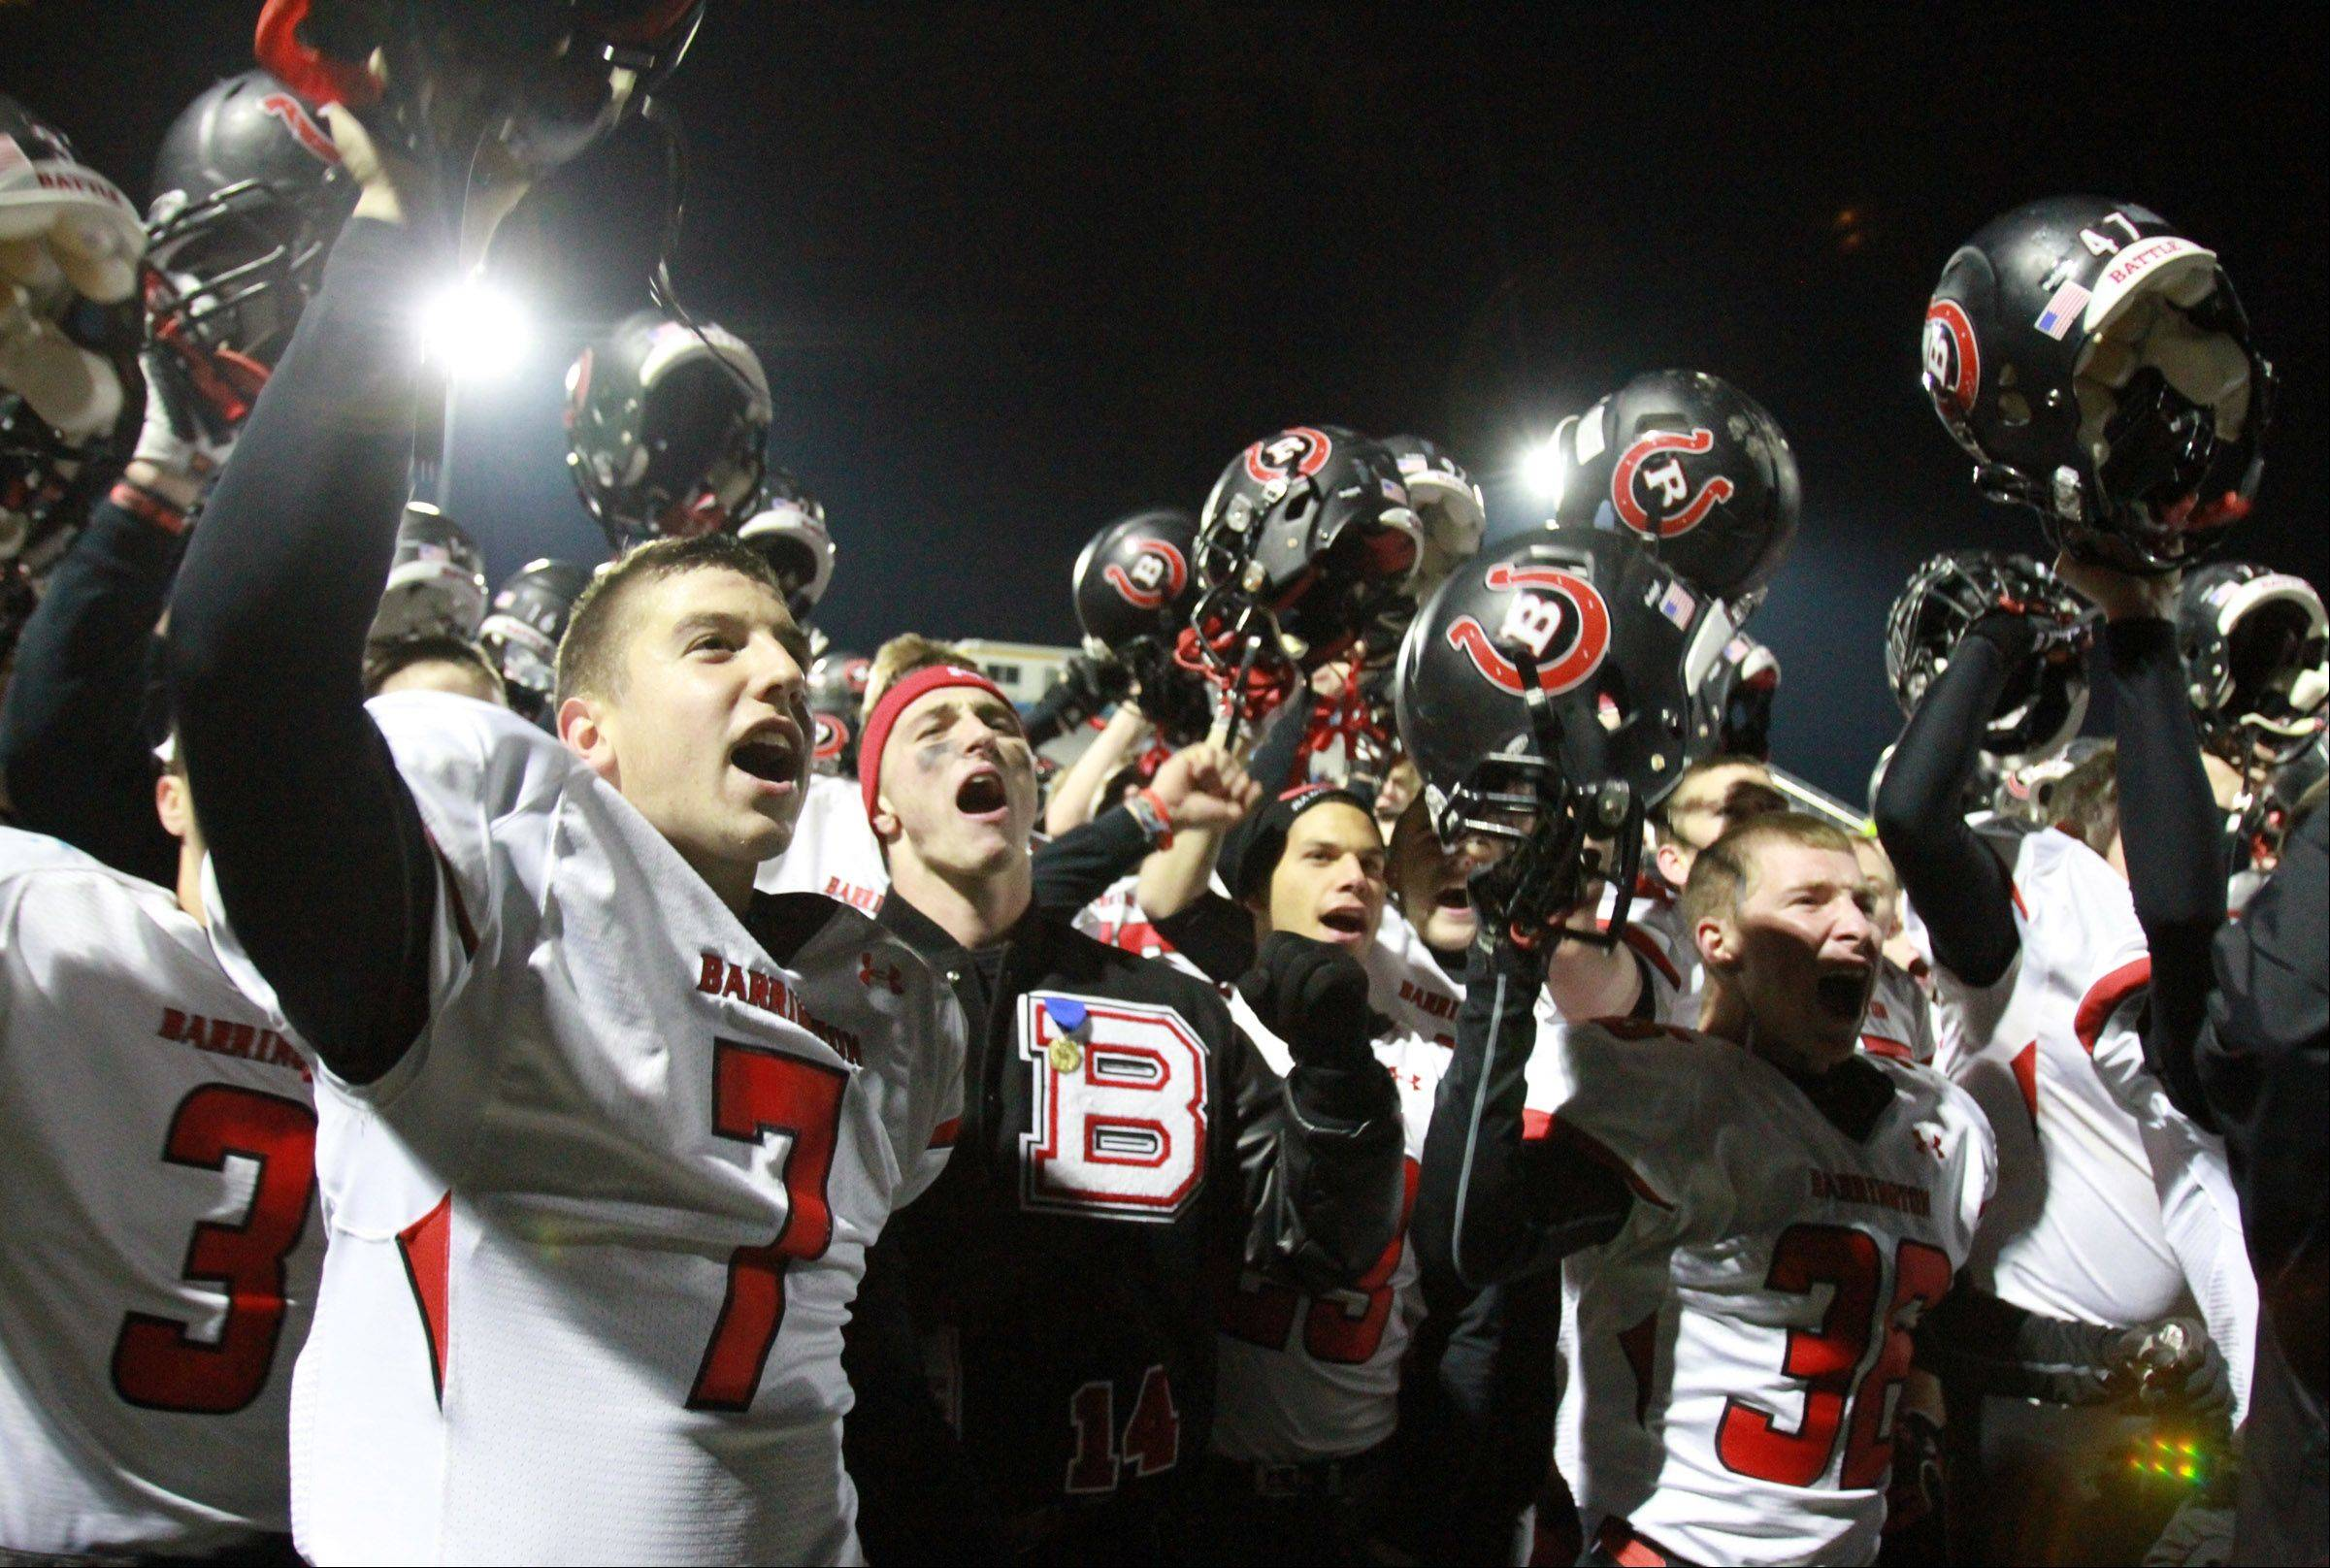 Barrington sings their school song in front of fans after defeating Warren in Gurnee.